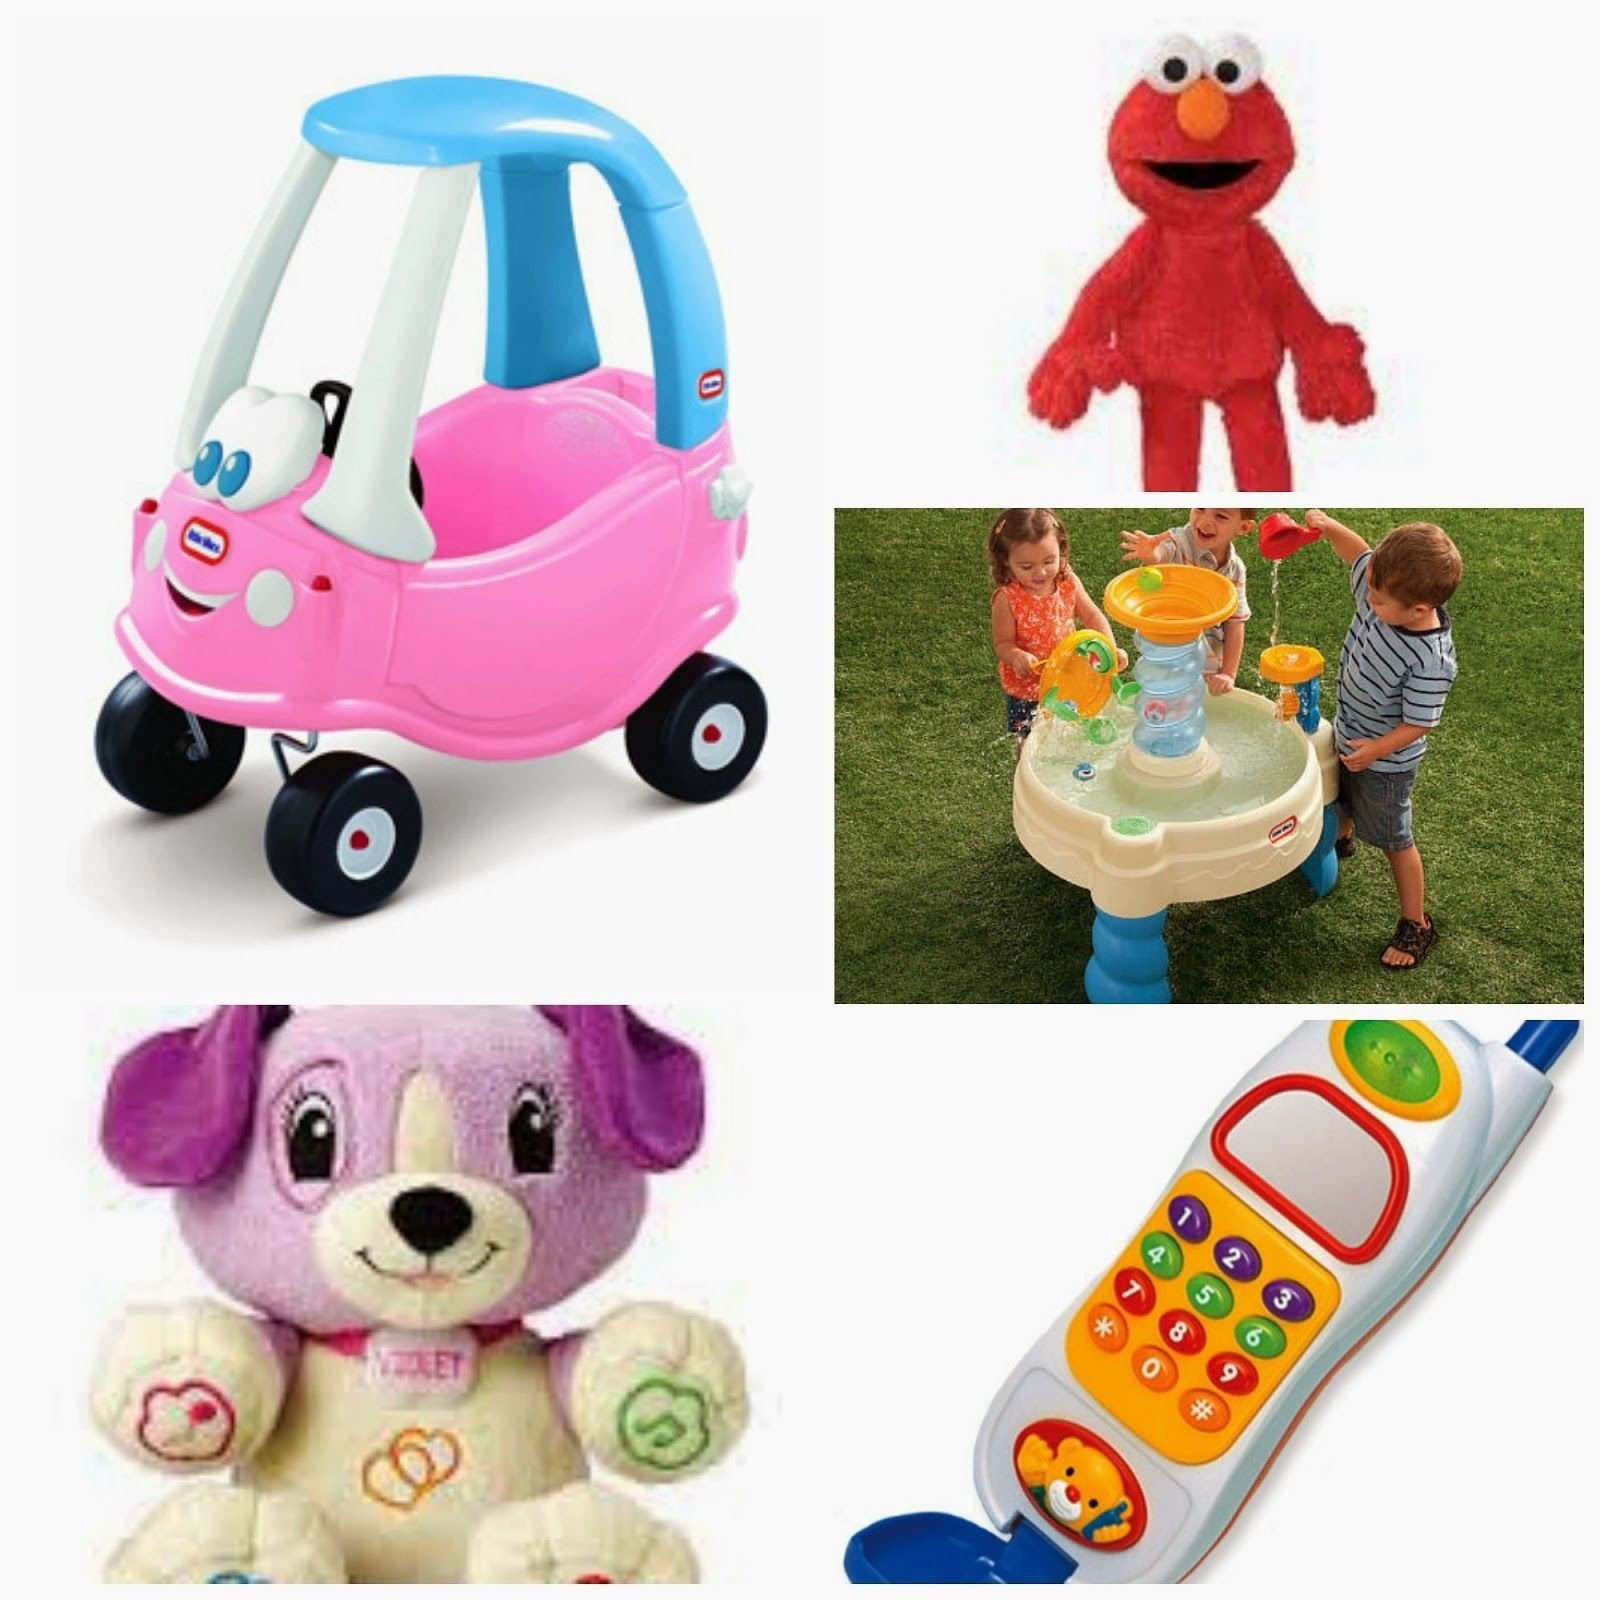 10 Lovely Gift Ideas For 1 Year Old Baby Girl gifts ideas for a 1 year old girl gift and girls 2 2020